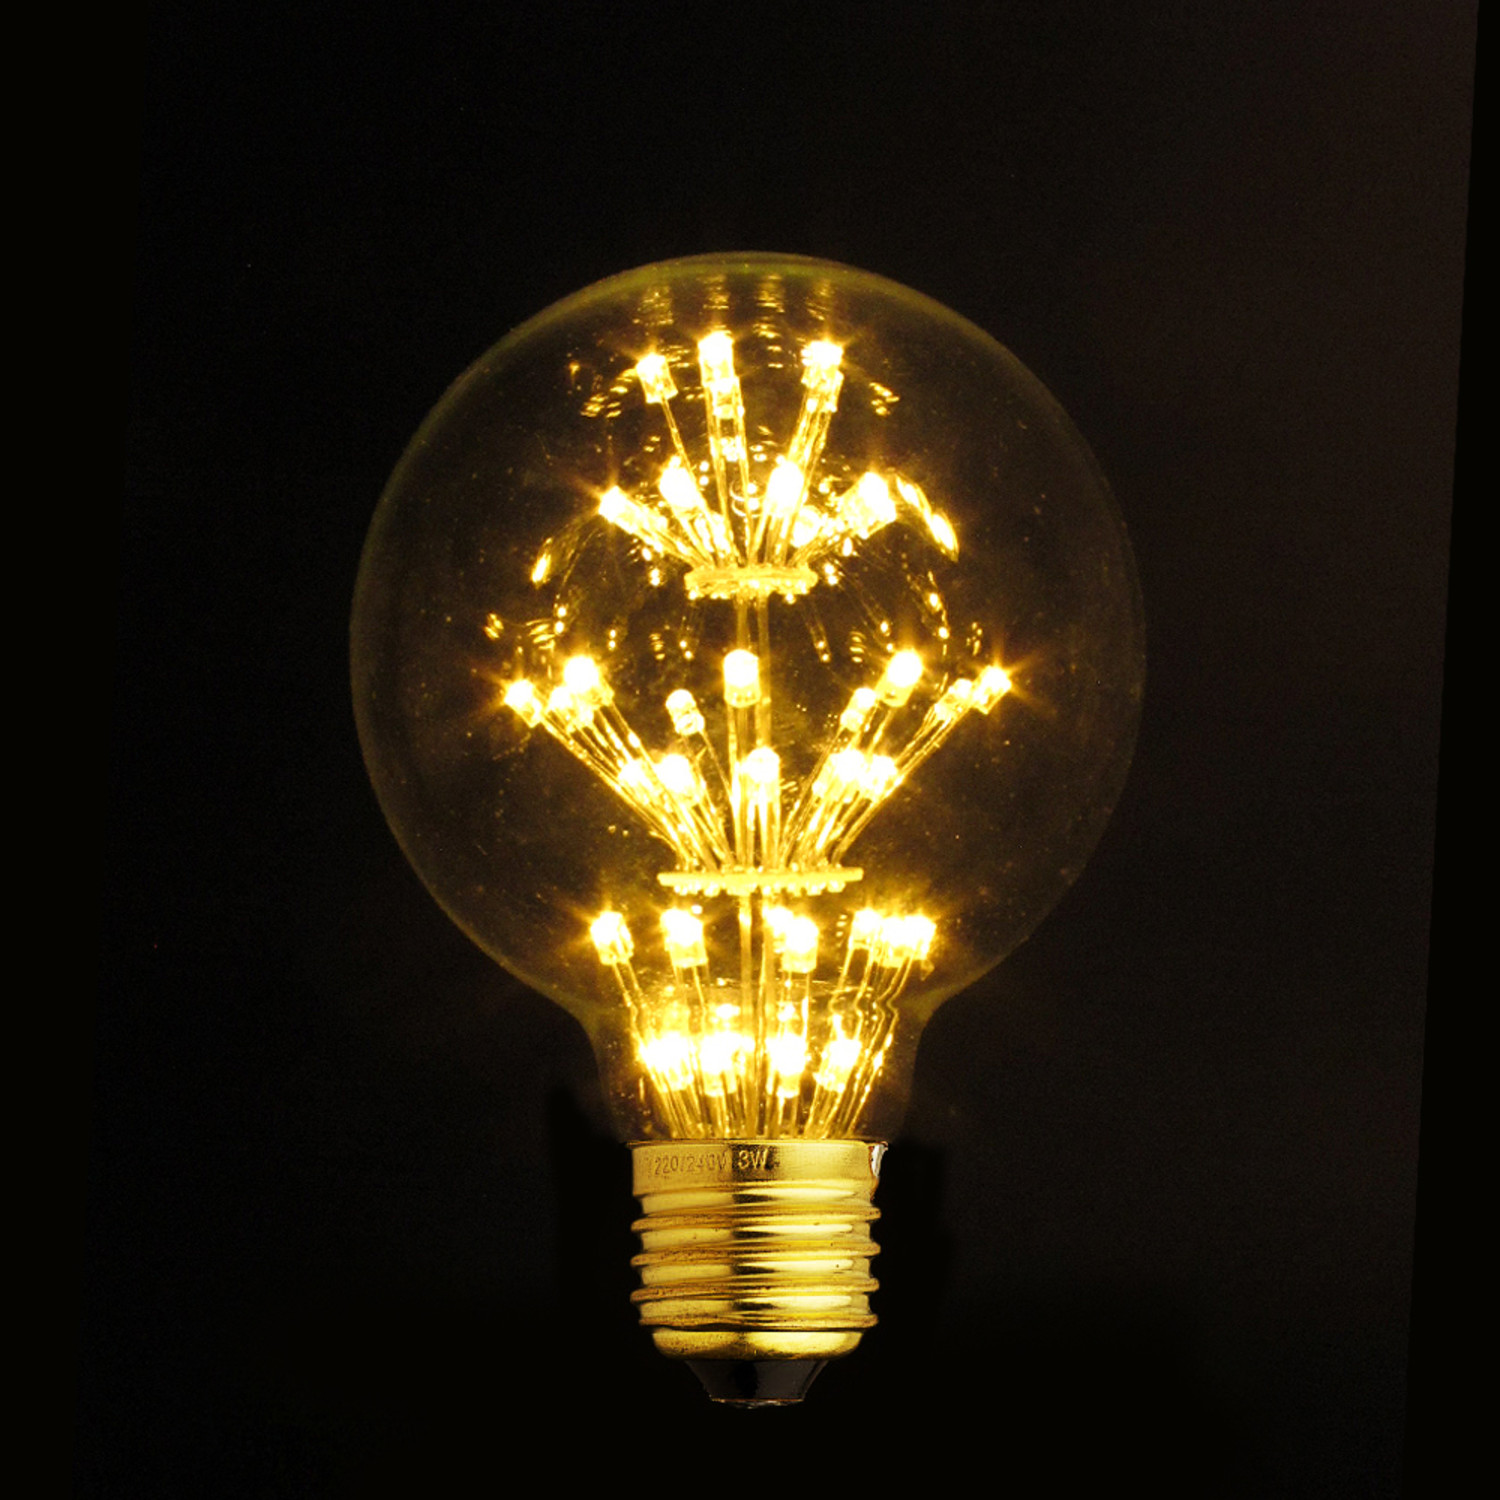 E27 Led Edison Fireworks Light Bulb Type G Light With Shade Led Edison Bulbs Touch Of Modern